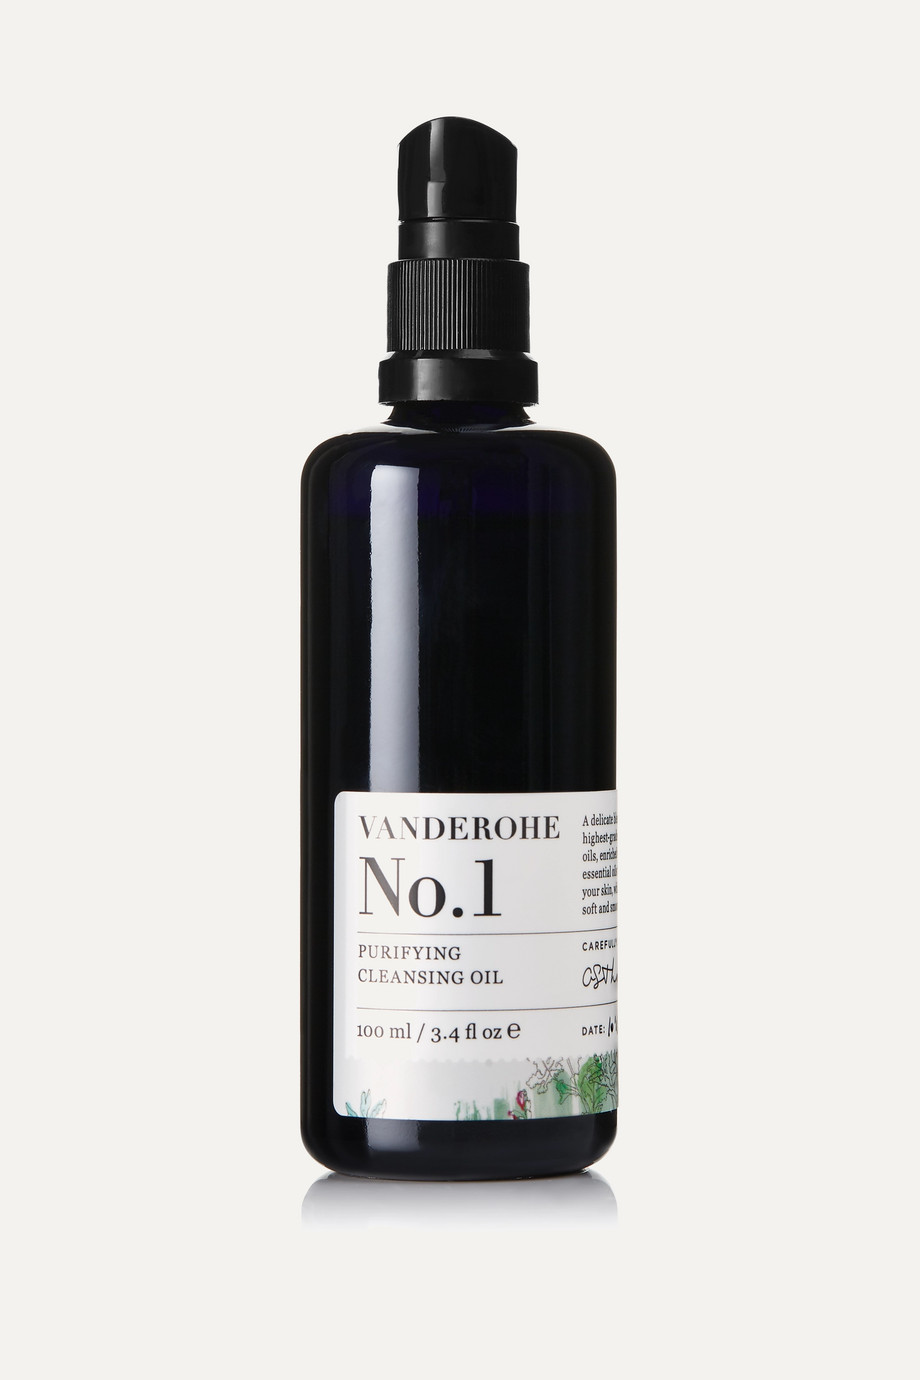 Vanderohe No.1 Purifying Cleansing Oil, 100ml